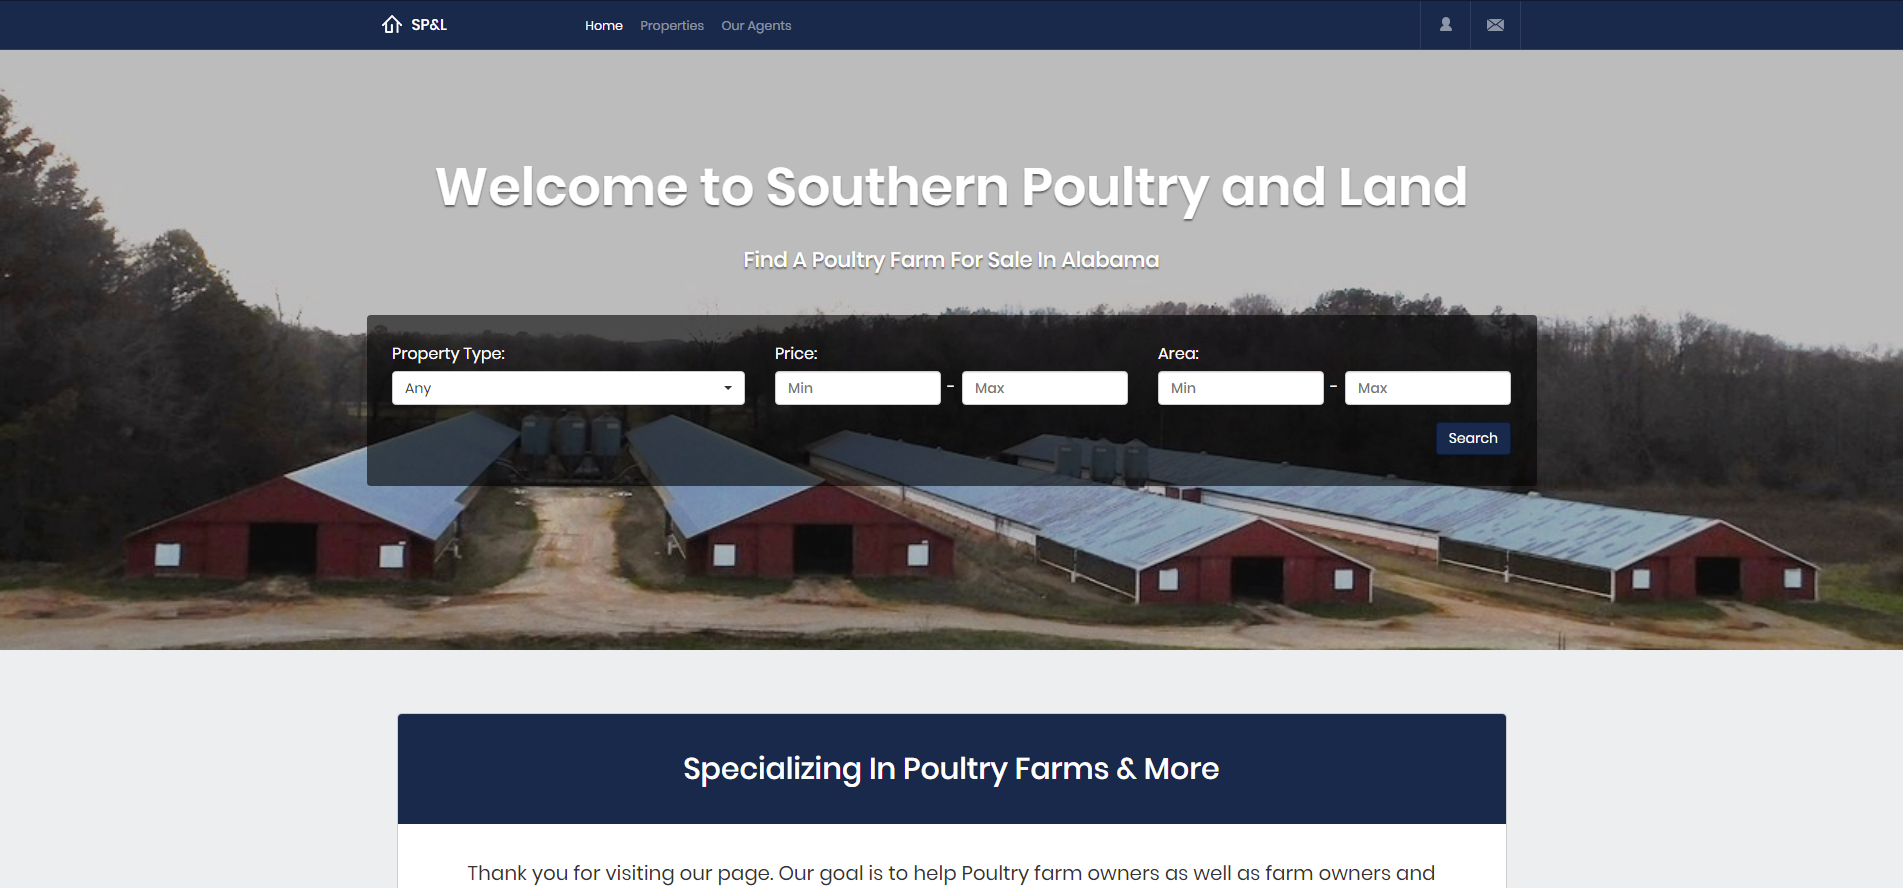 Home - Southern Poultry and Land